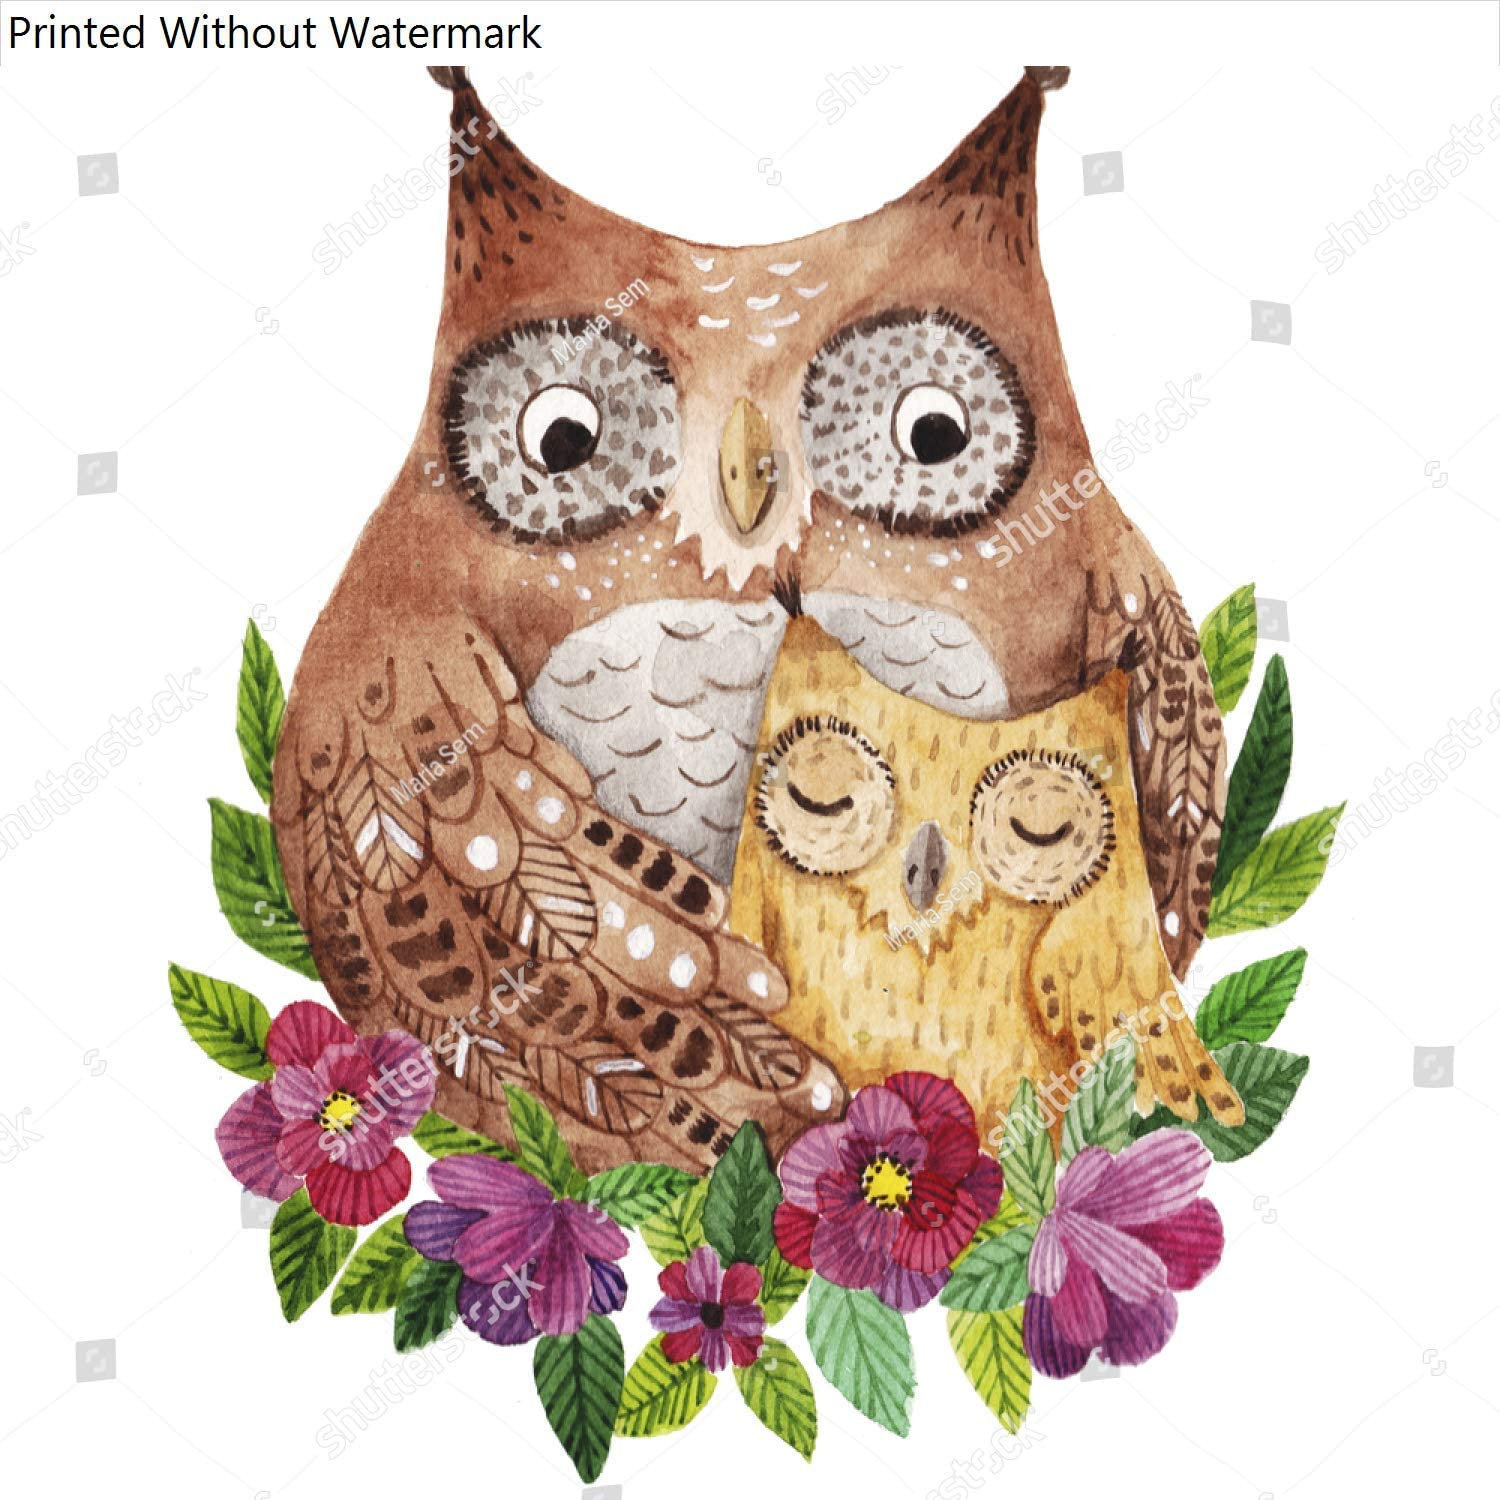 KwikMedia Poster of Cute Mothers Day Greeting Card with Owls Watercolor Illustration